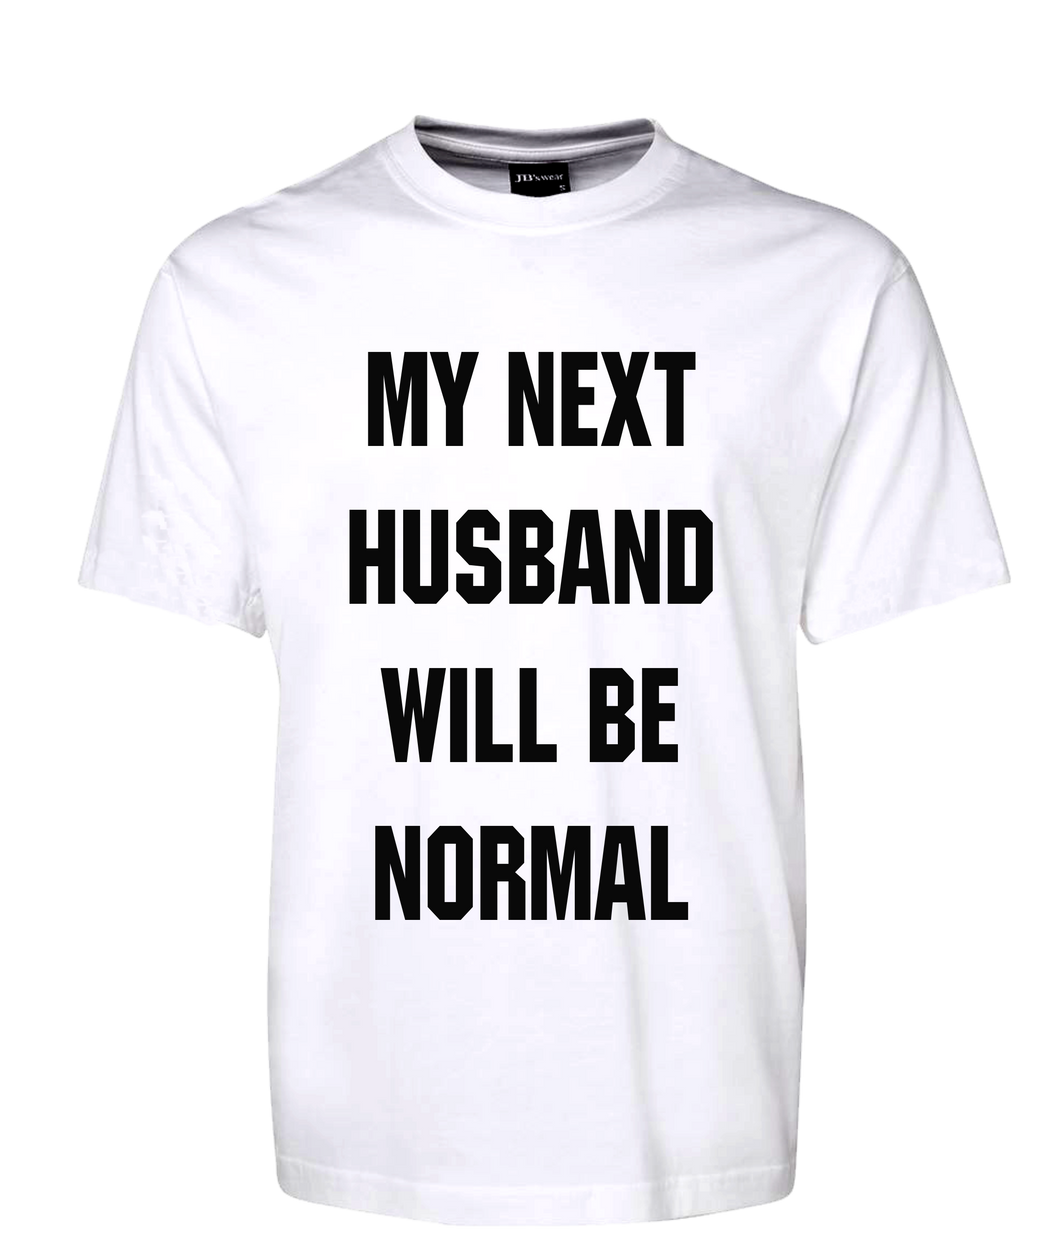 My Next Husband Will Be Normal Tee T-Shirt FDG01-1HT-23011 - fair-dinkum-gifts